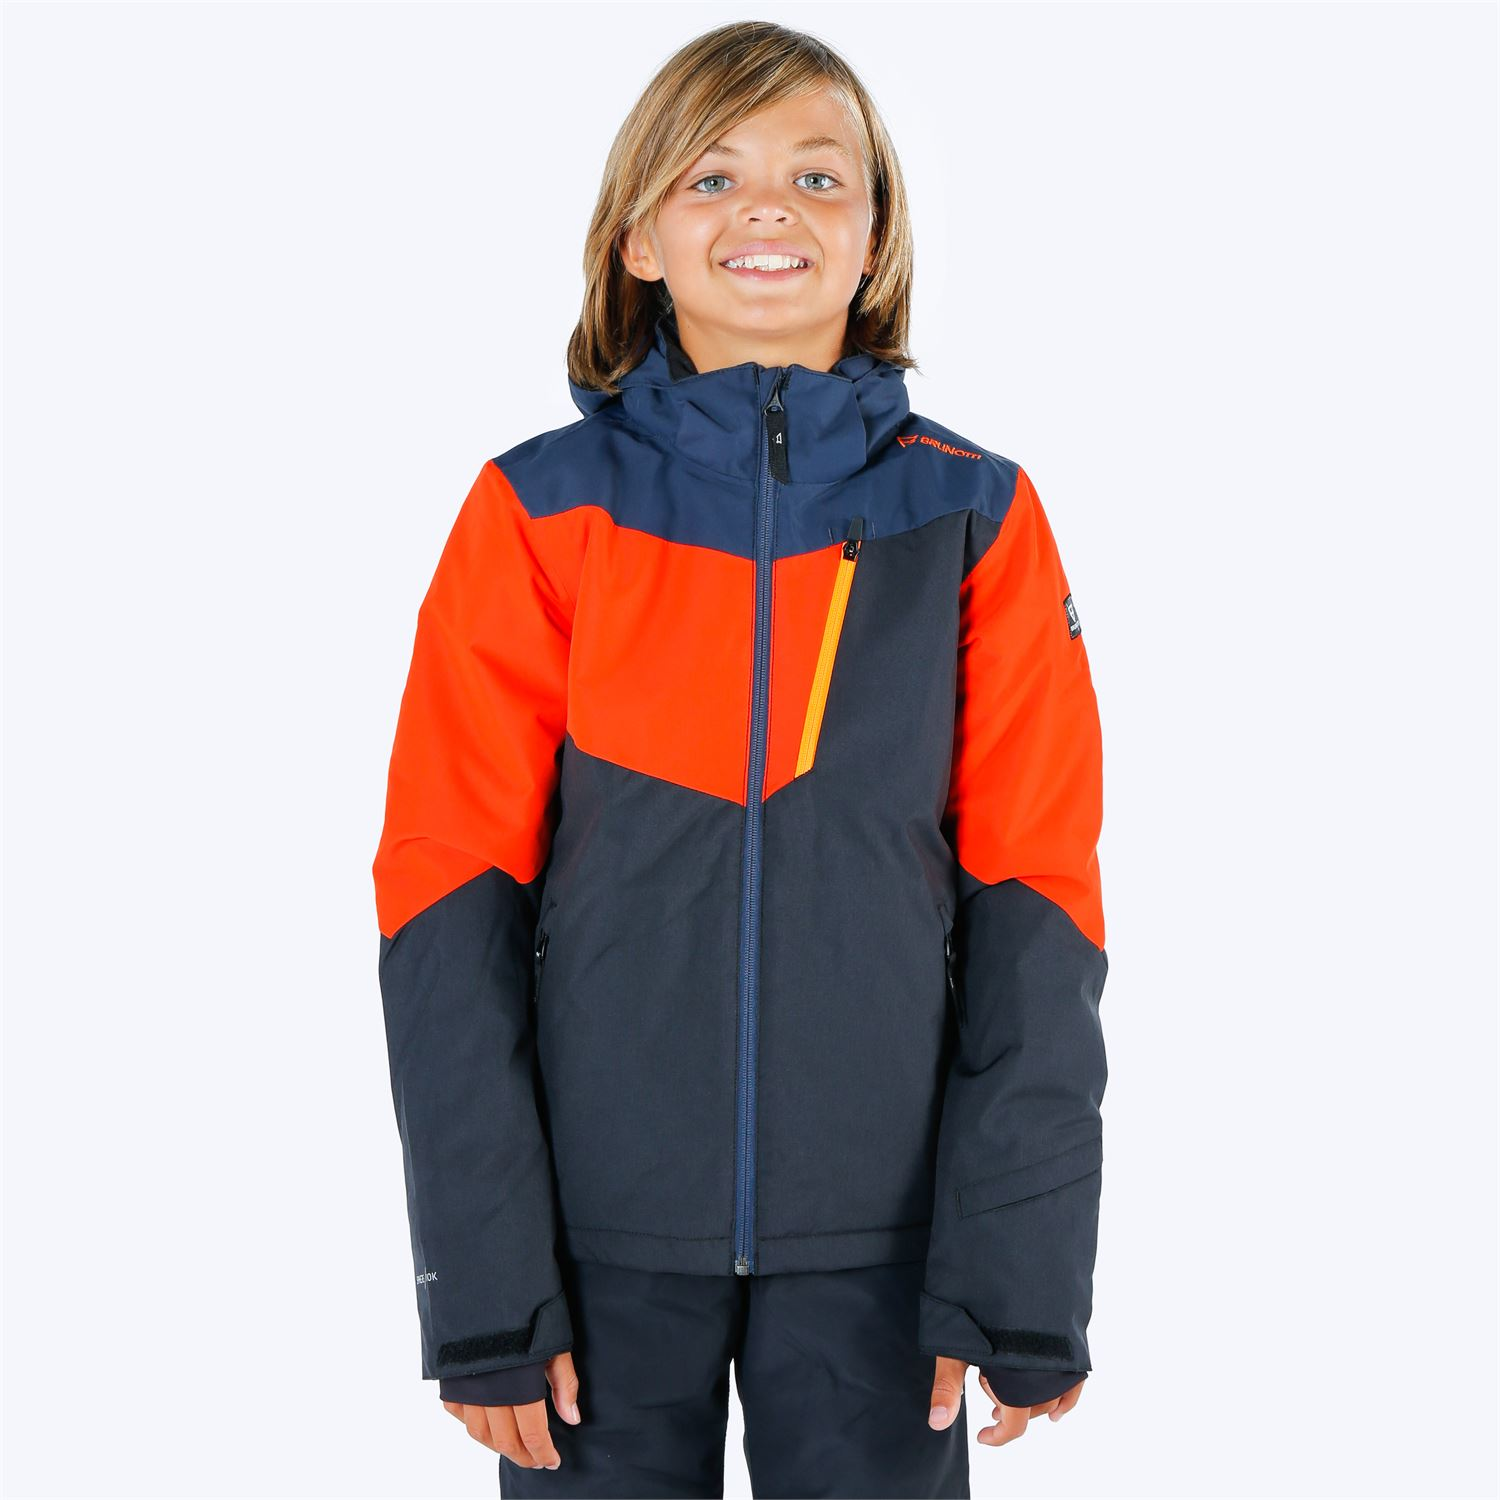 Dakoto JR Boys Snowjacket